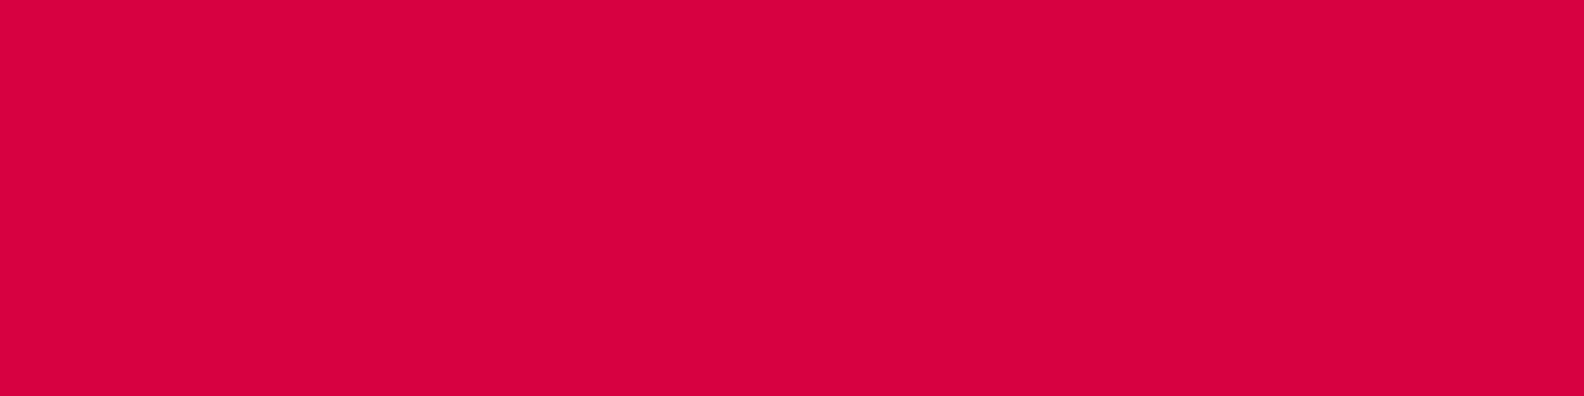 1584x396 Rich Carmine Solid Color Background